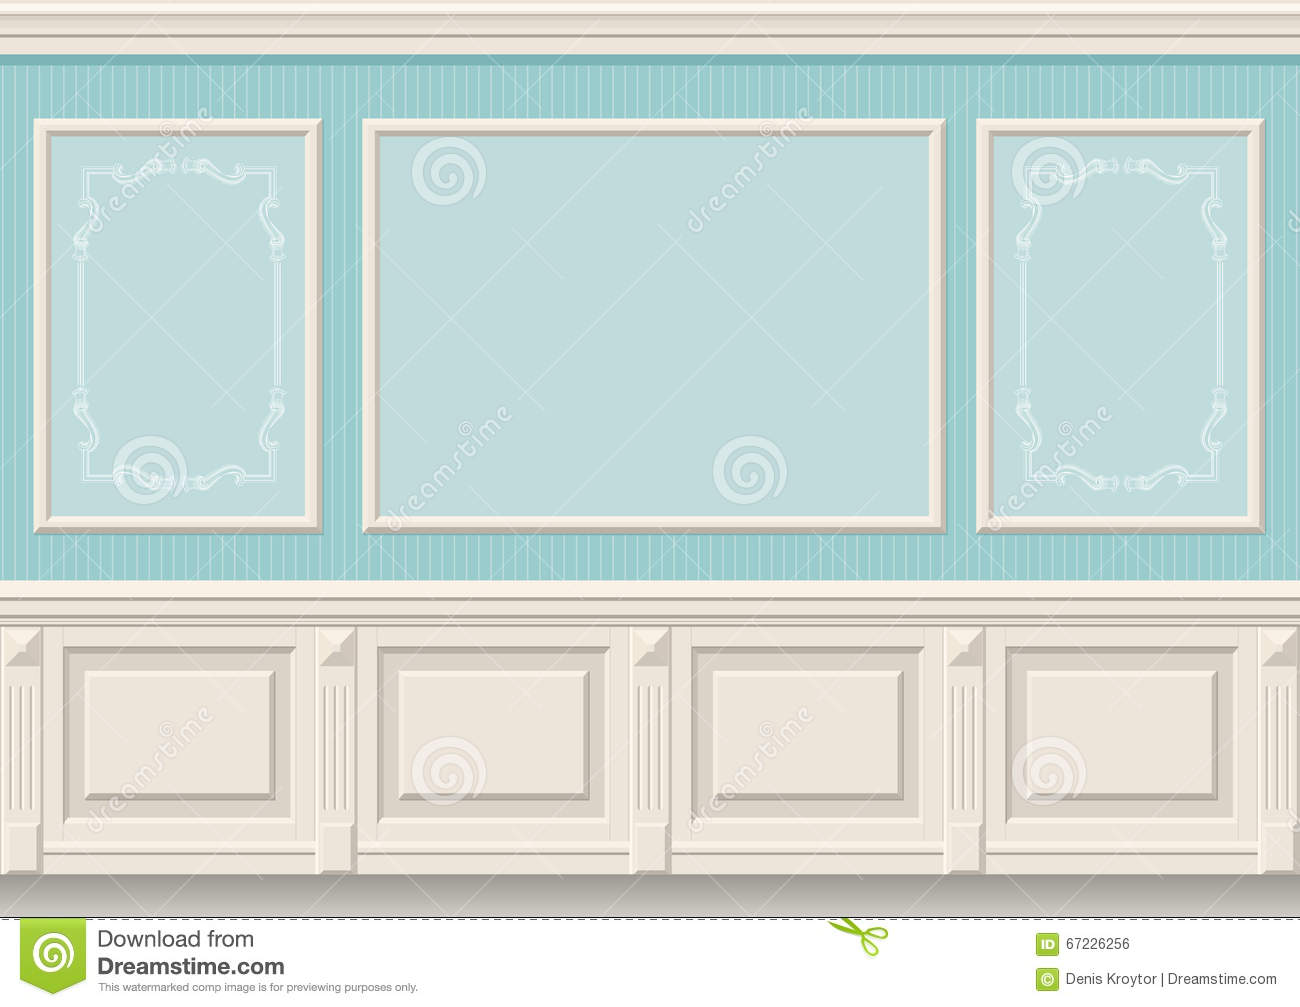 On Road To Aberdeen City Hall furthermore Greek Orders 2 further Charcoal Drawings Of Skulls additionally Plastic Mirror Wall Panels And Mirror Tiles besides Here Is Inspiring Home Exterior Design. on classical french architecture